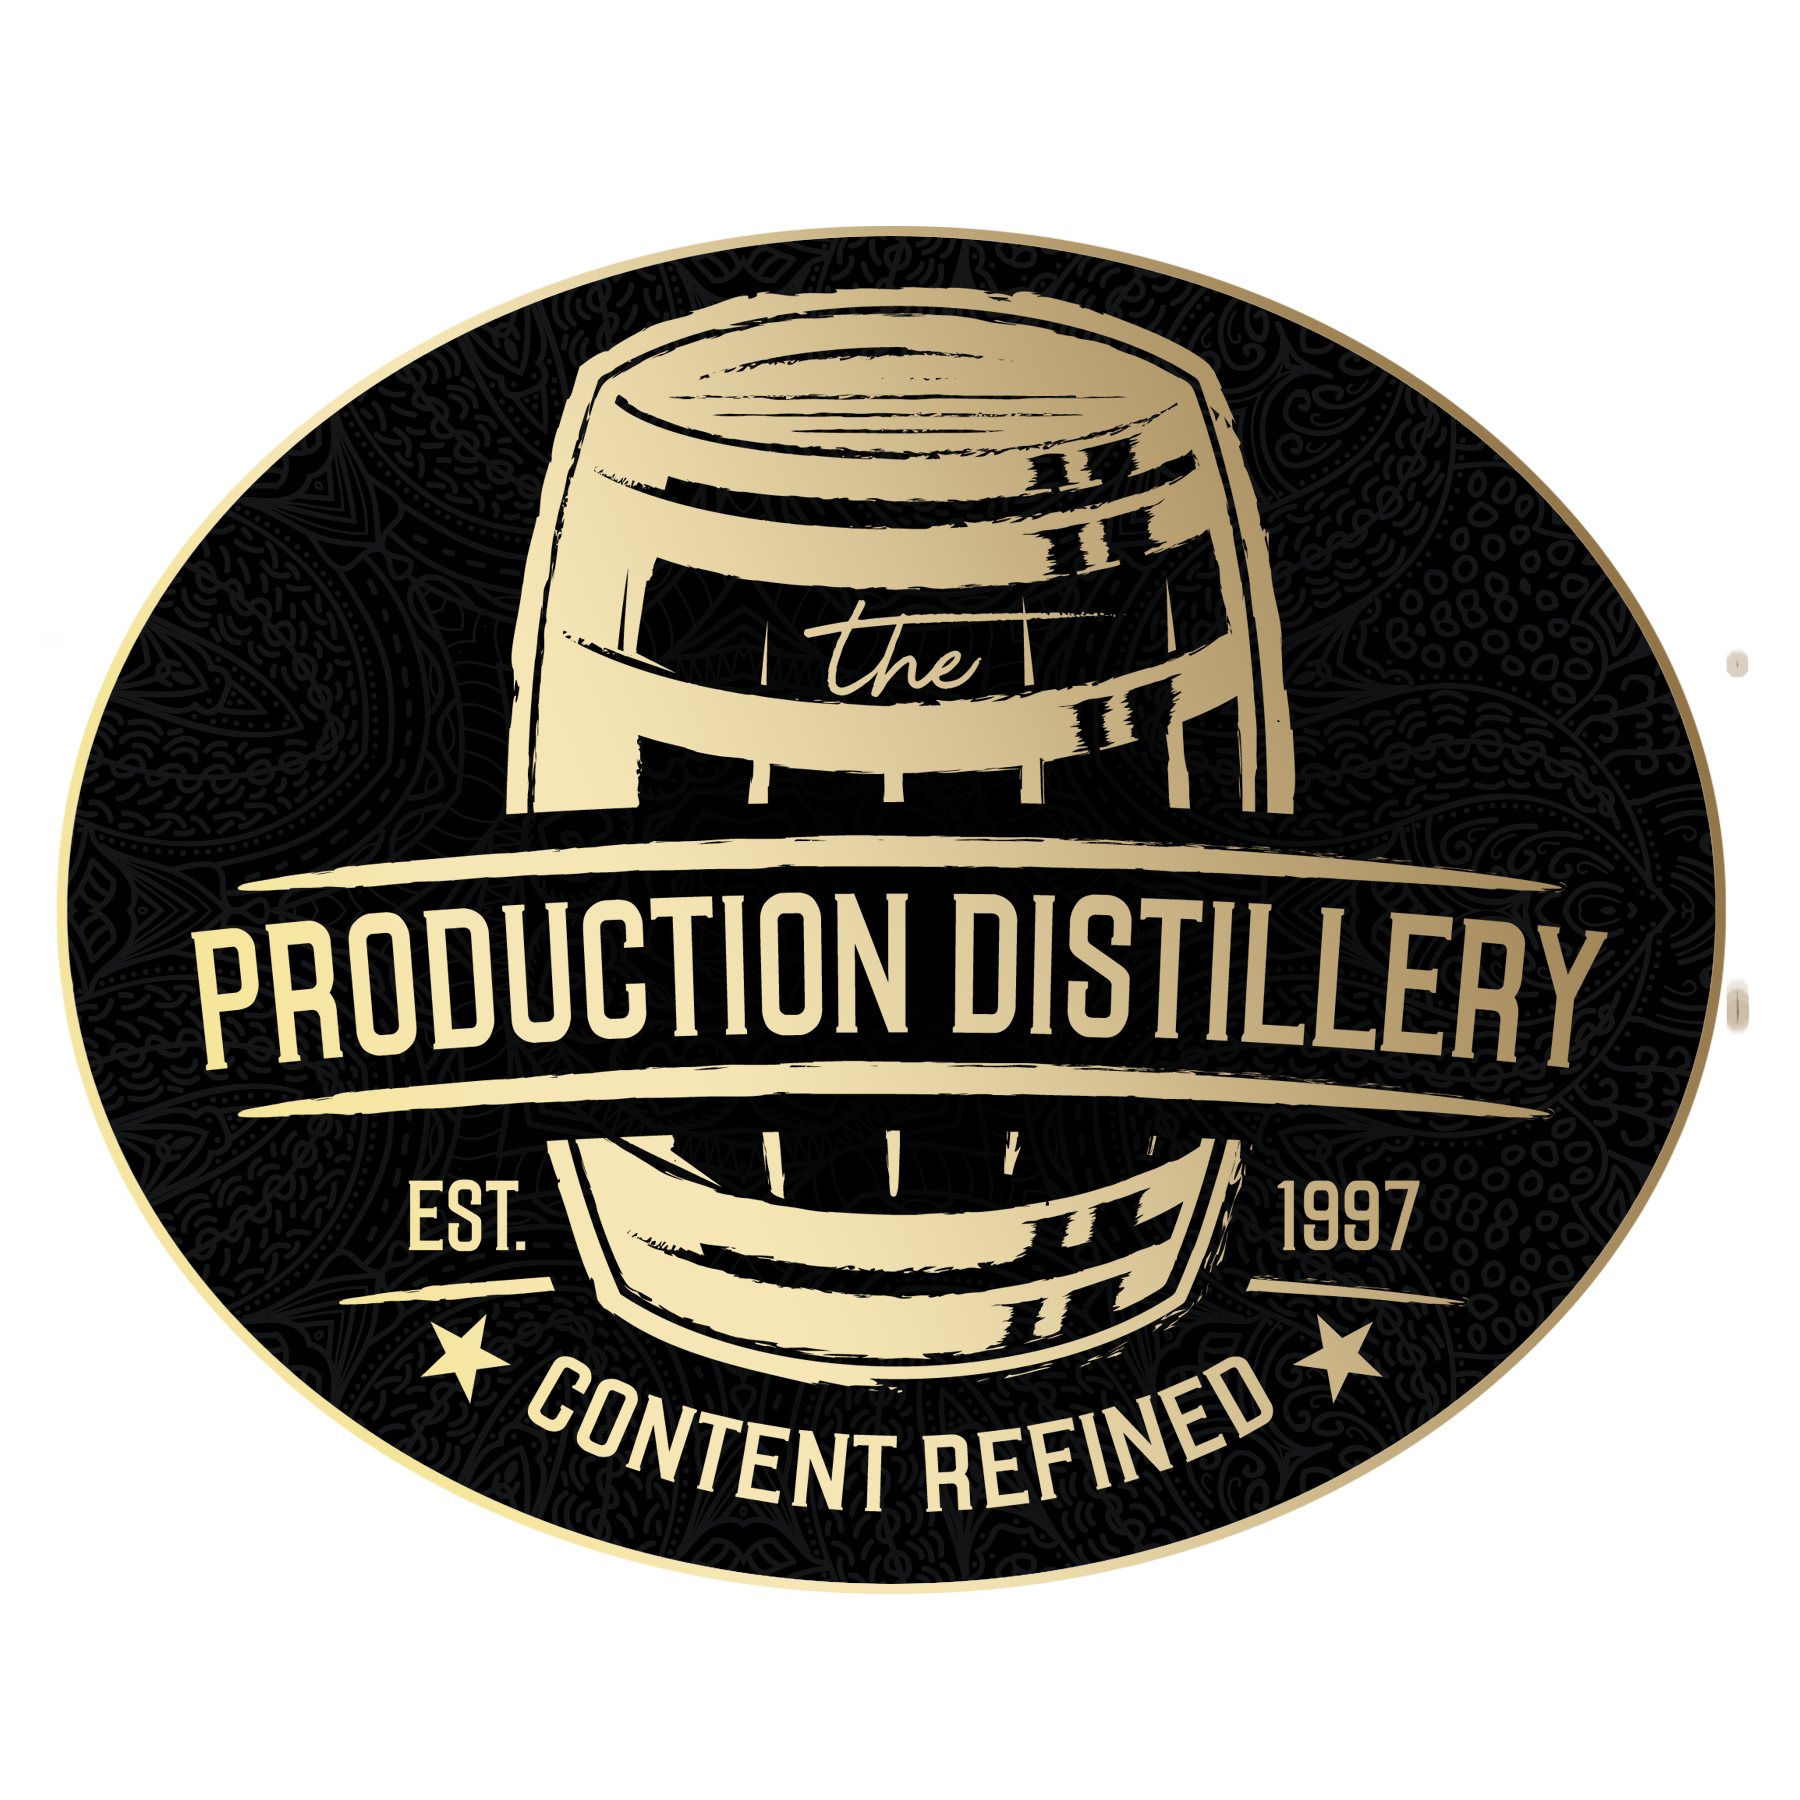 The Production Distillery